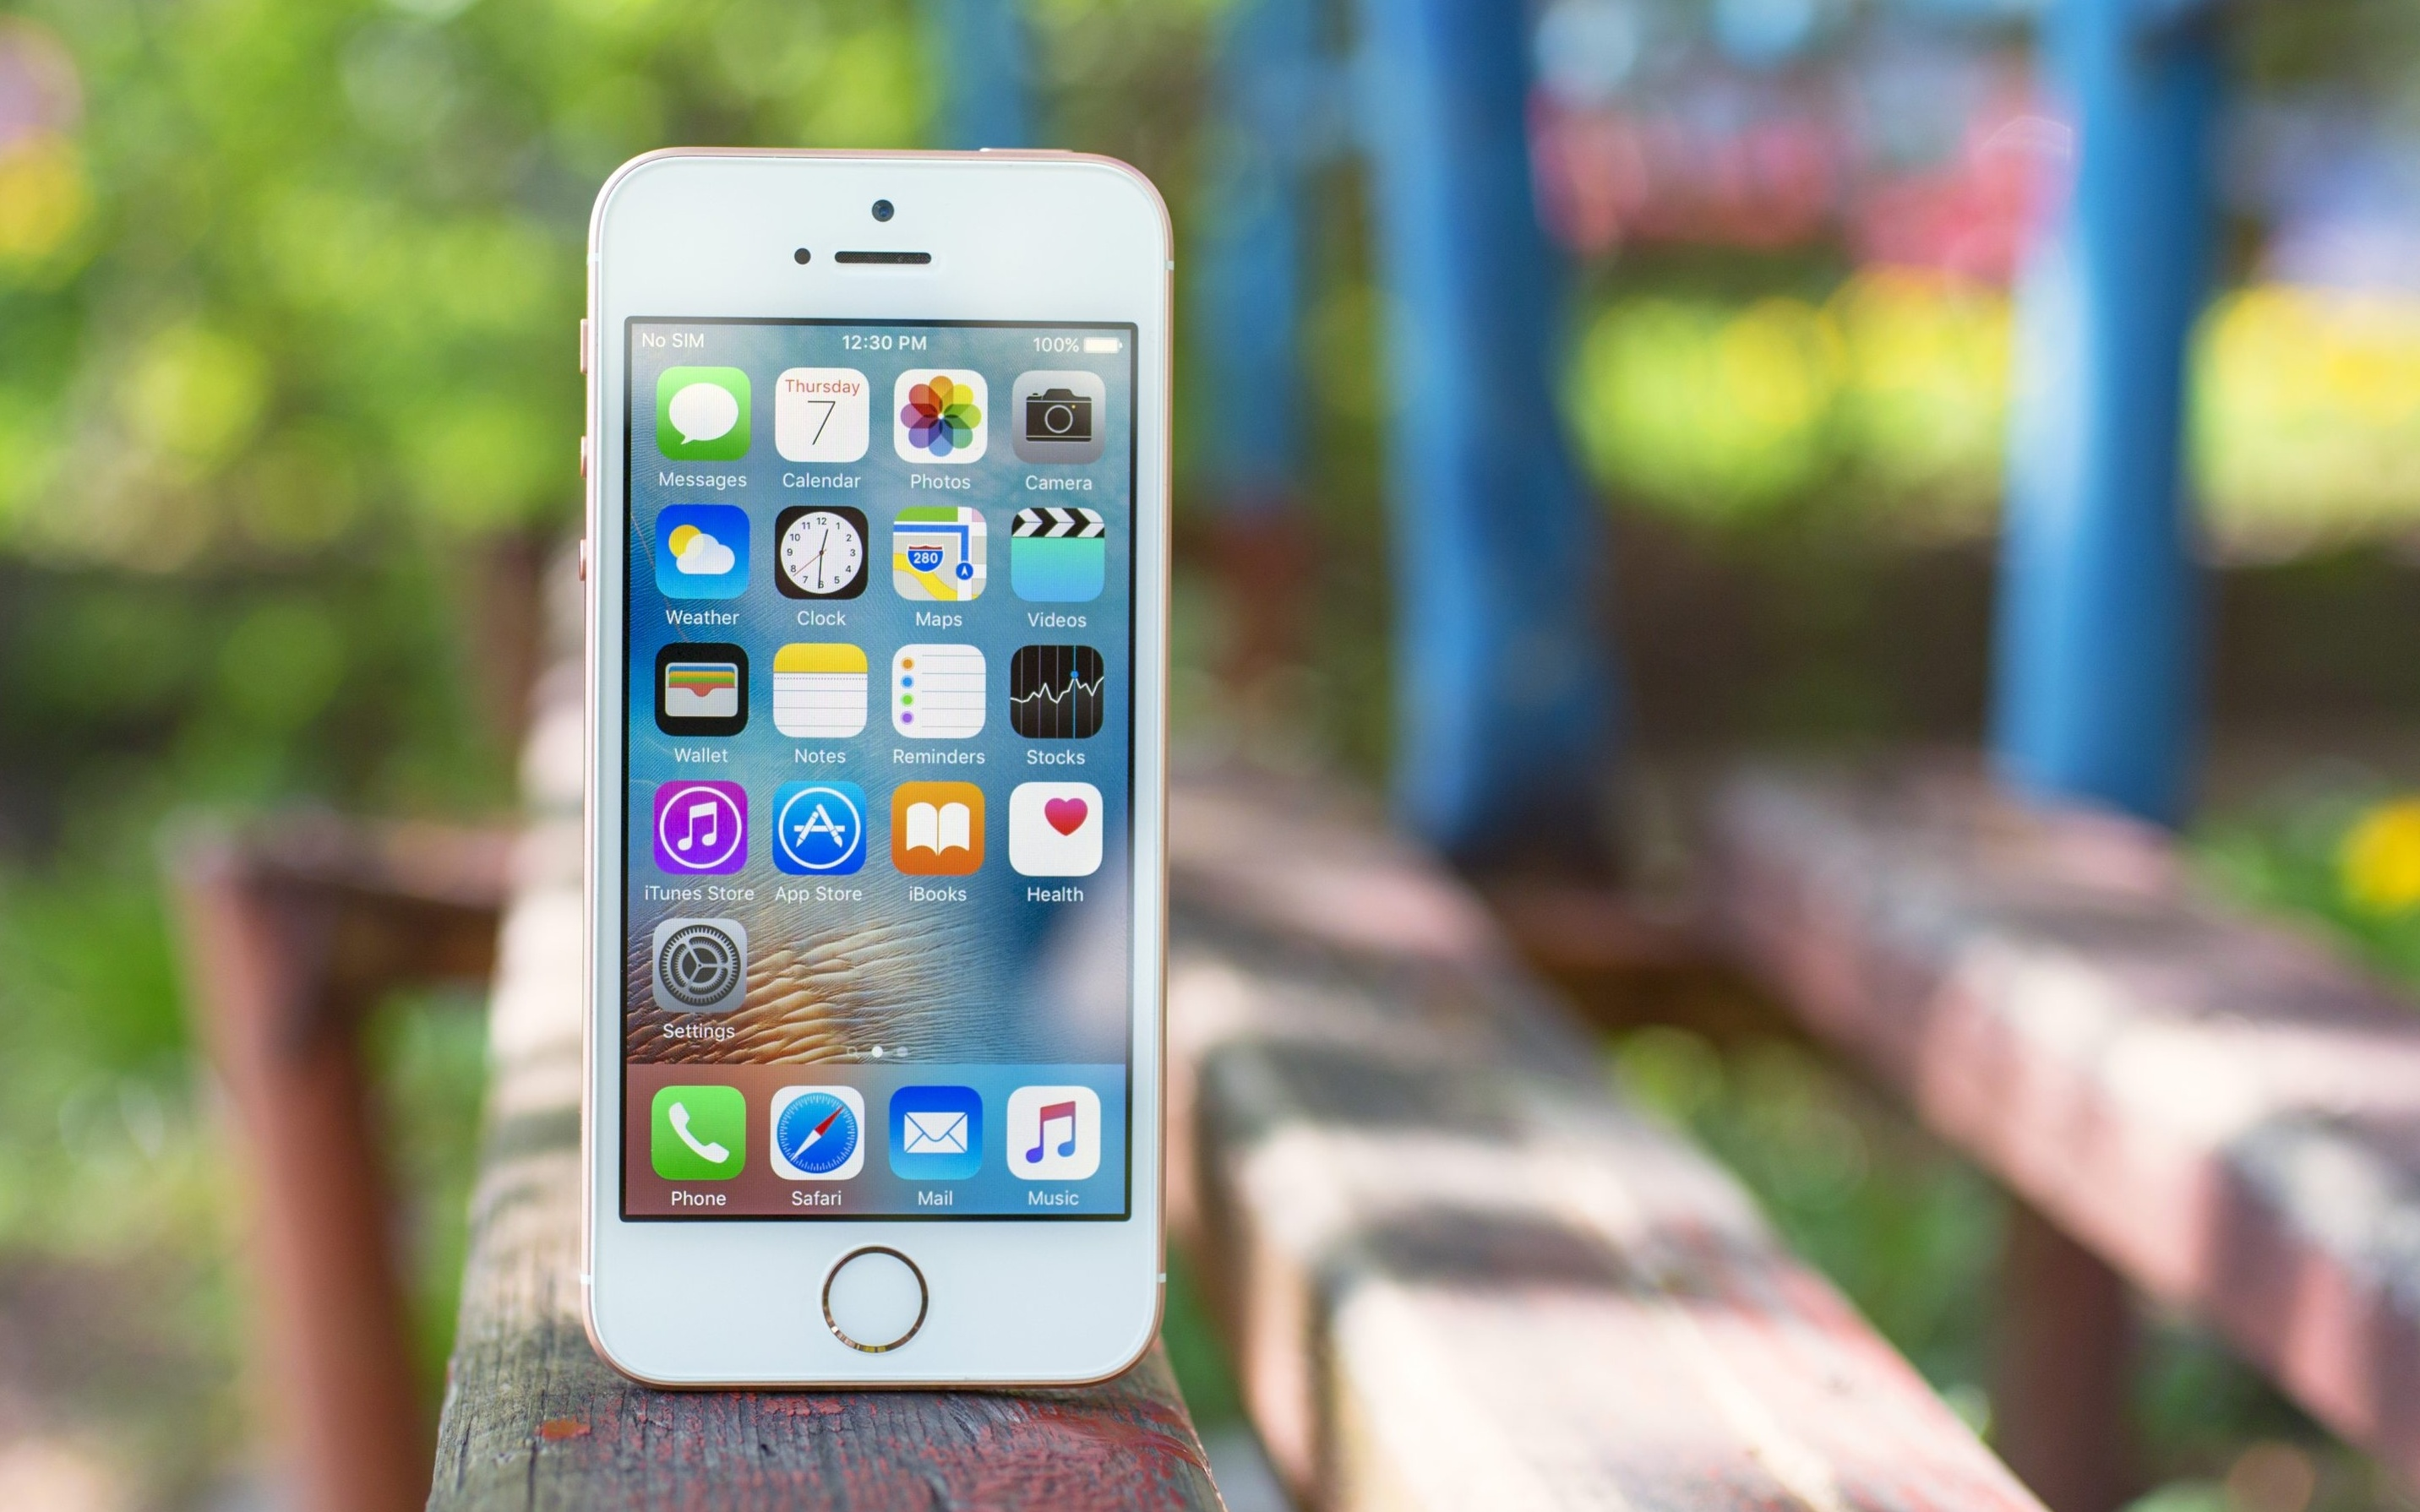 iPhone SE 2 isn't coming or won't be radically different